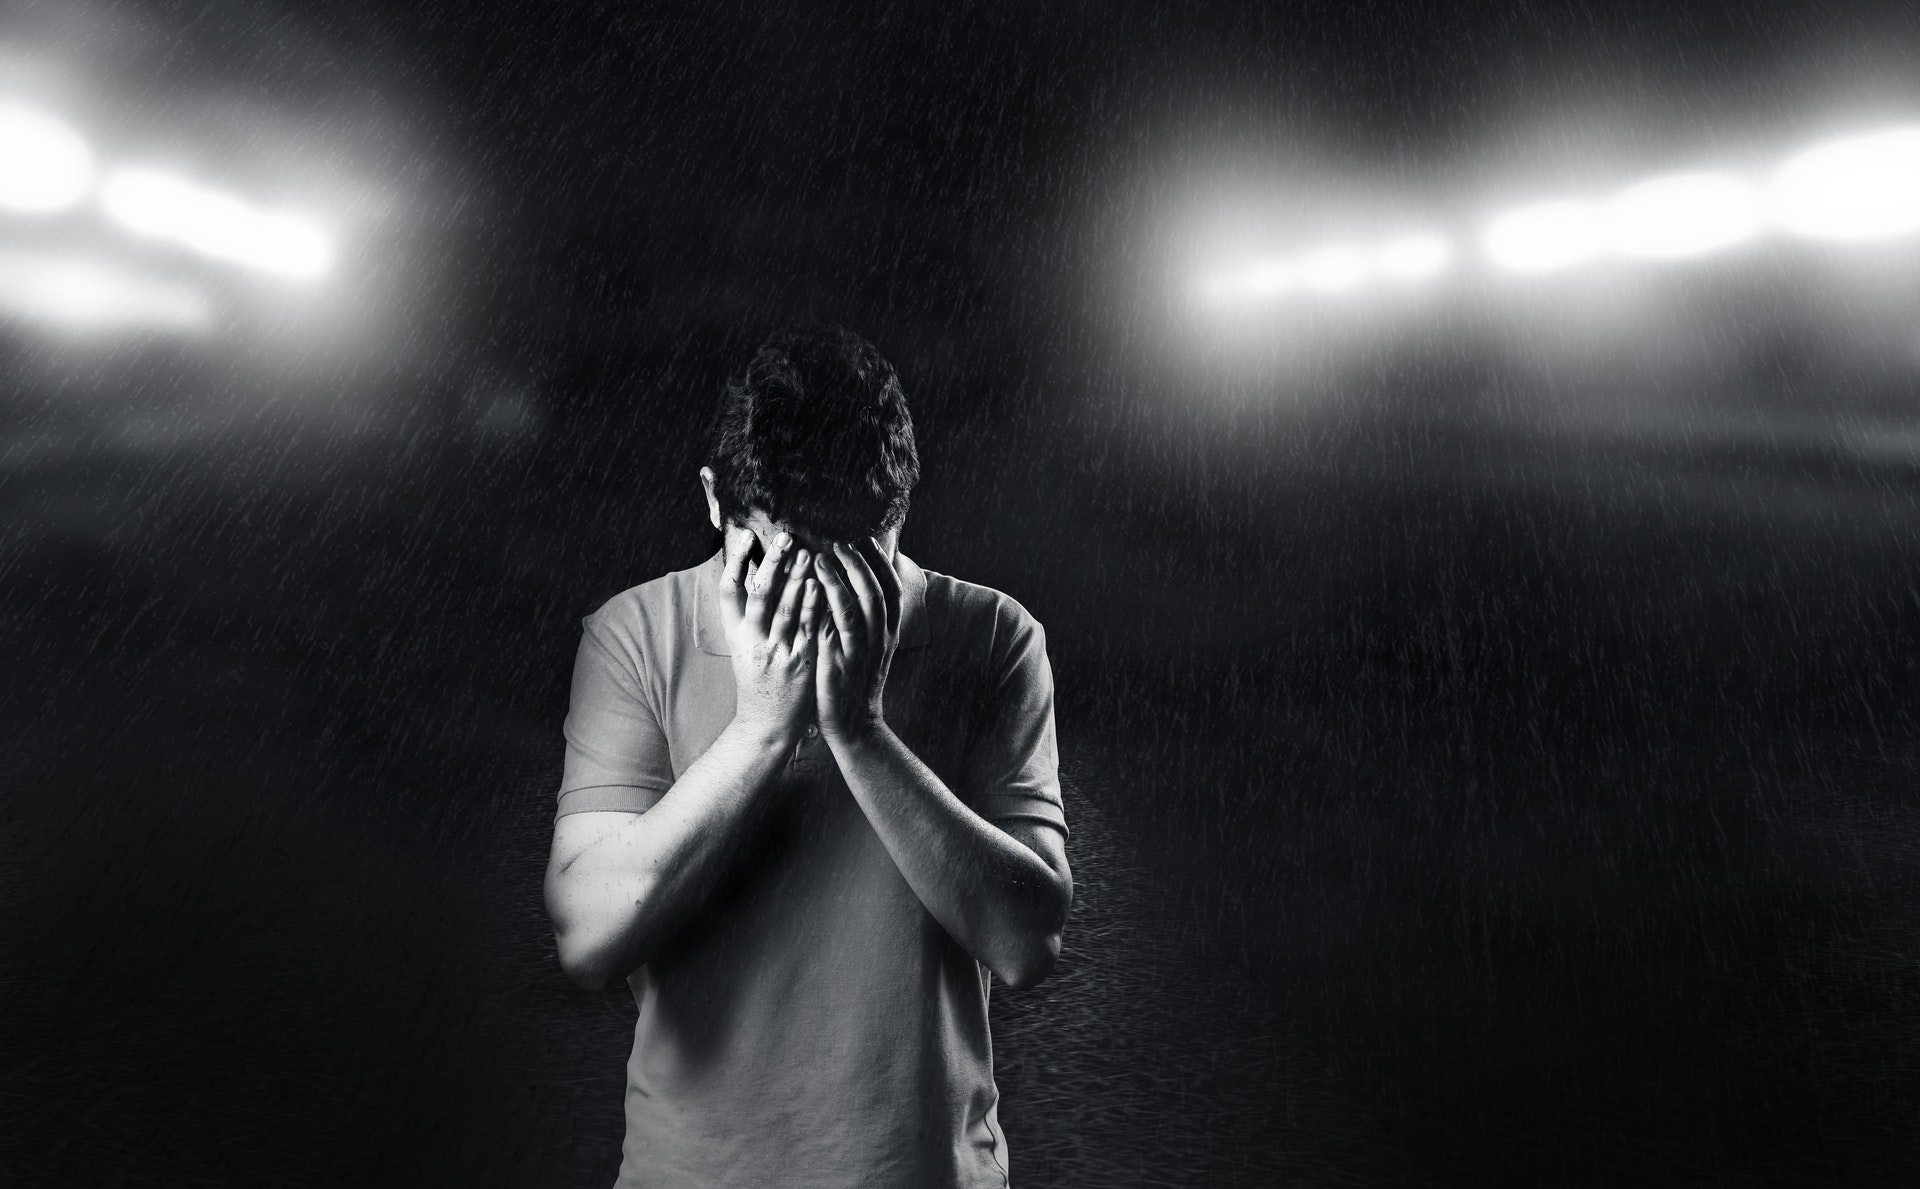 Alone Boy Hd Wallpapers Looks Sad For Free Download Crying Sad Boy Hd 1920x1189 Download Hd Wallpaper Wallpapertip